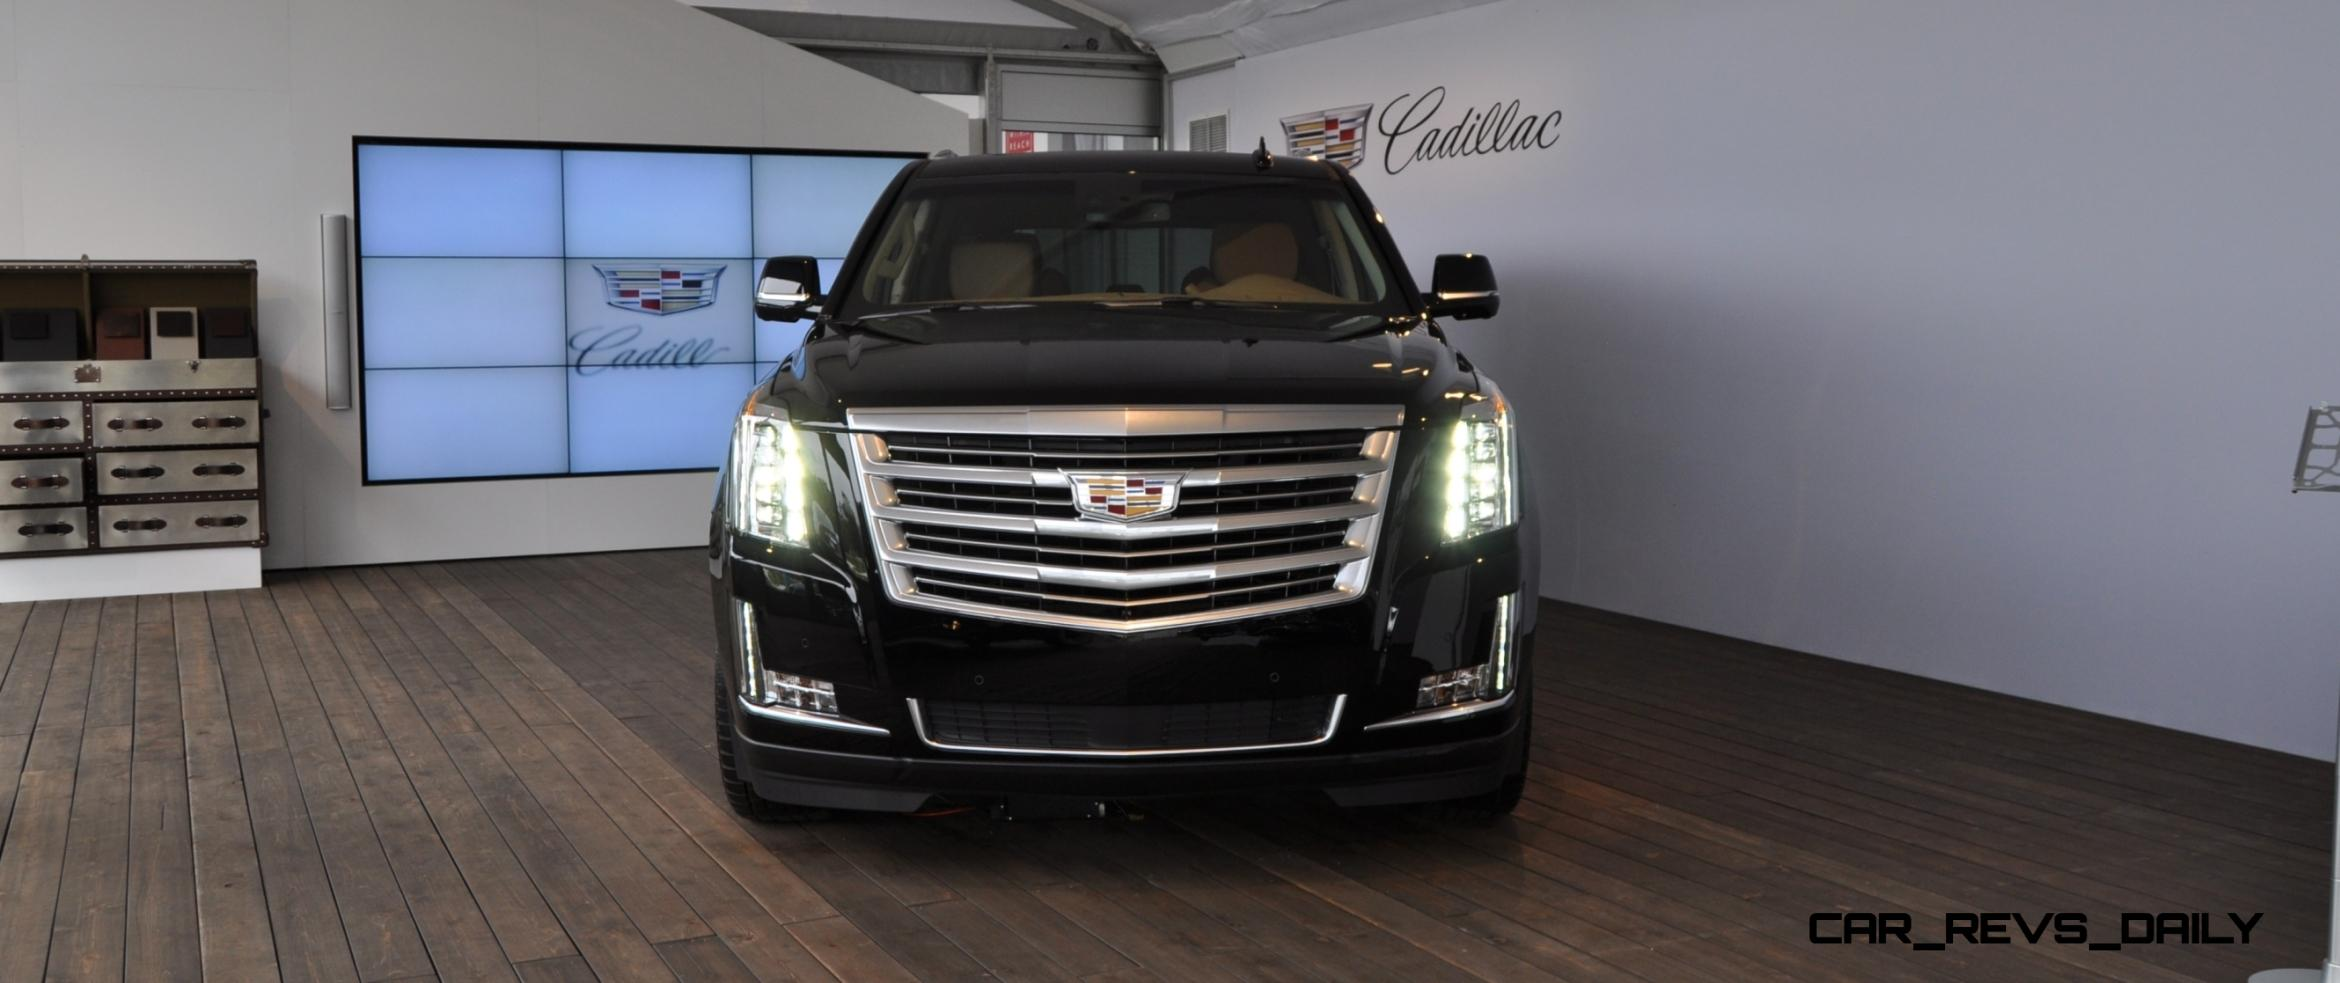 2015 cadillac escalade platinum and standard model unveiled for pebble beach 9. Black Bedroom Furniture Sets. Home Design Ideas